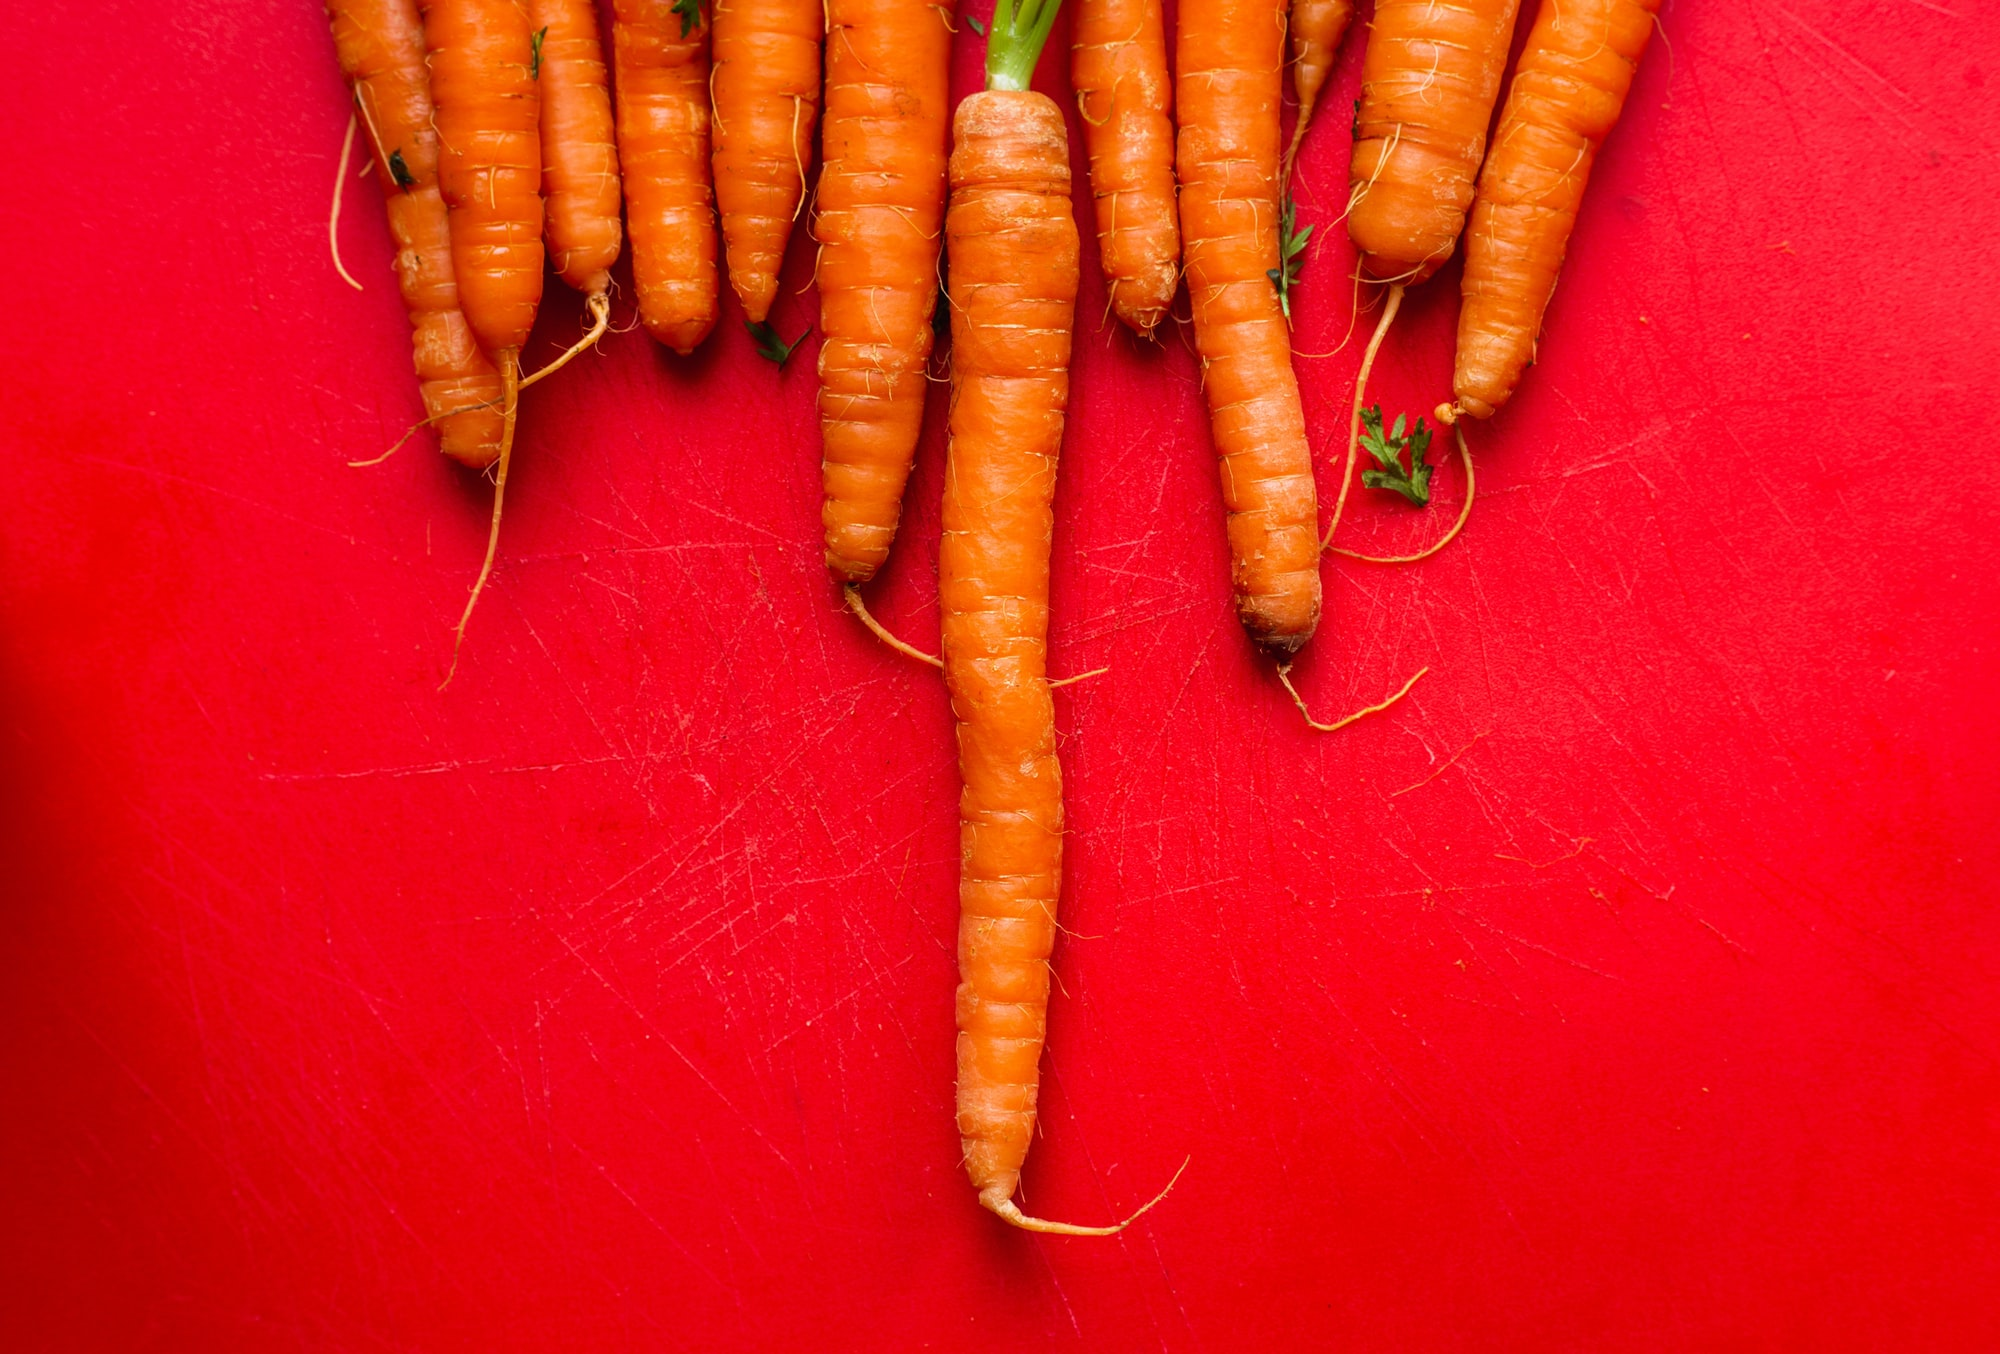 Carrots are an orange rainbow food by Louis Hansel for Unsplash